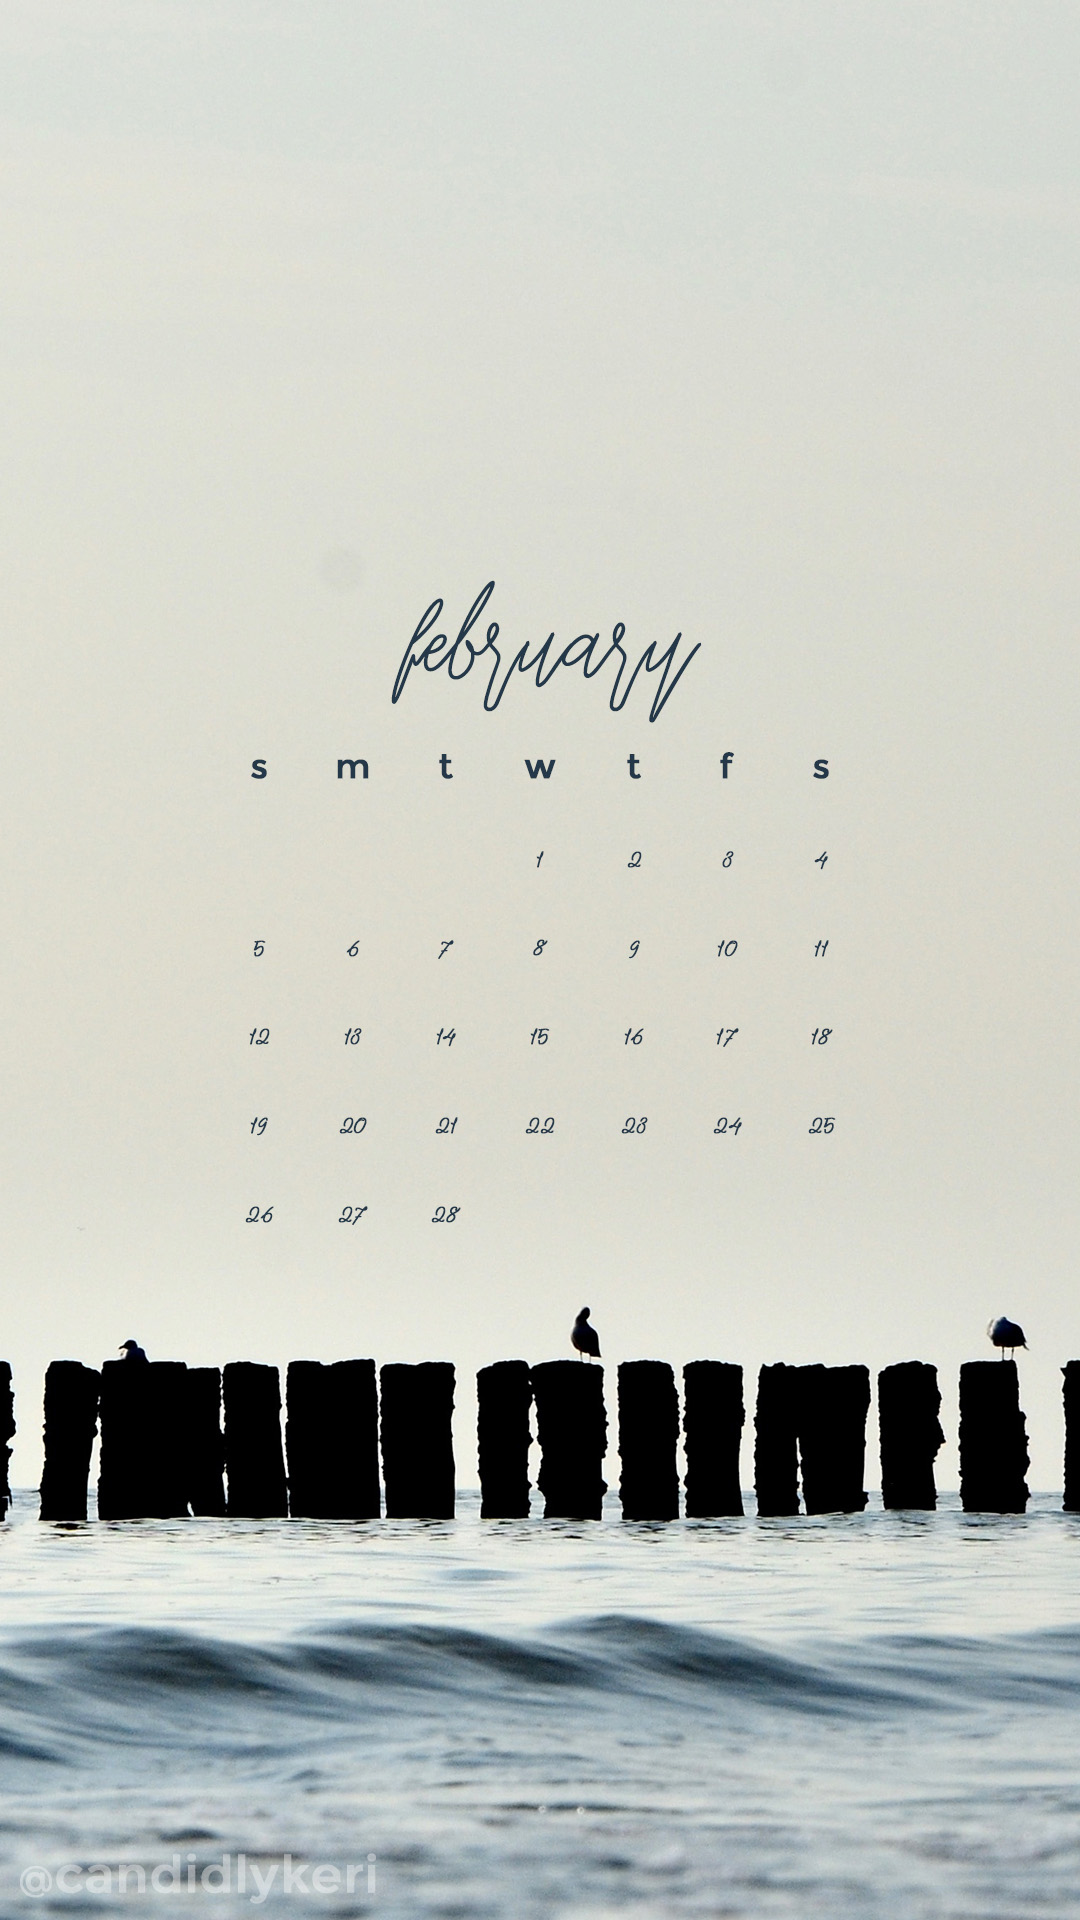 Beach-pier-ocean-February-calendar-you-can-download-for-free-on-the-blog-For-any-dev-wallpaper-wp3603050